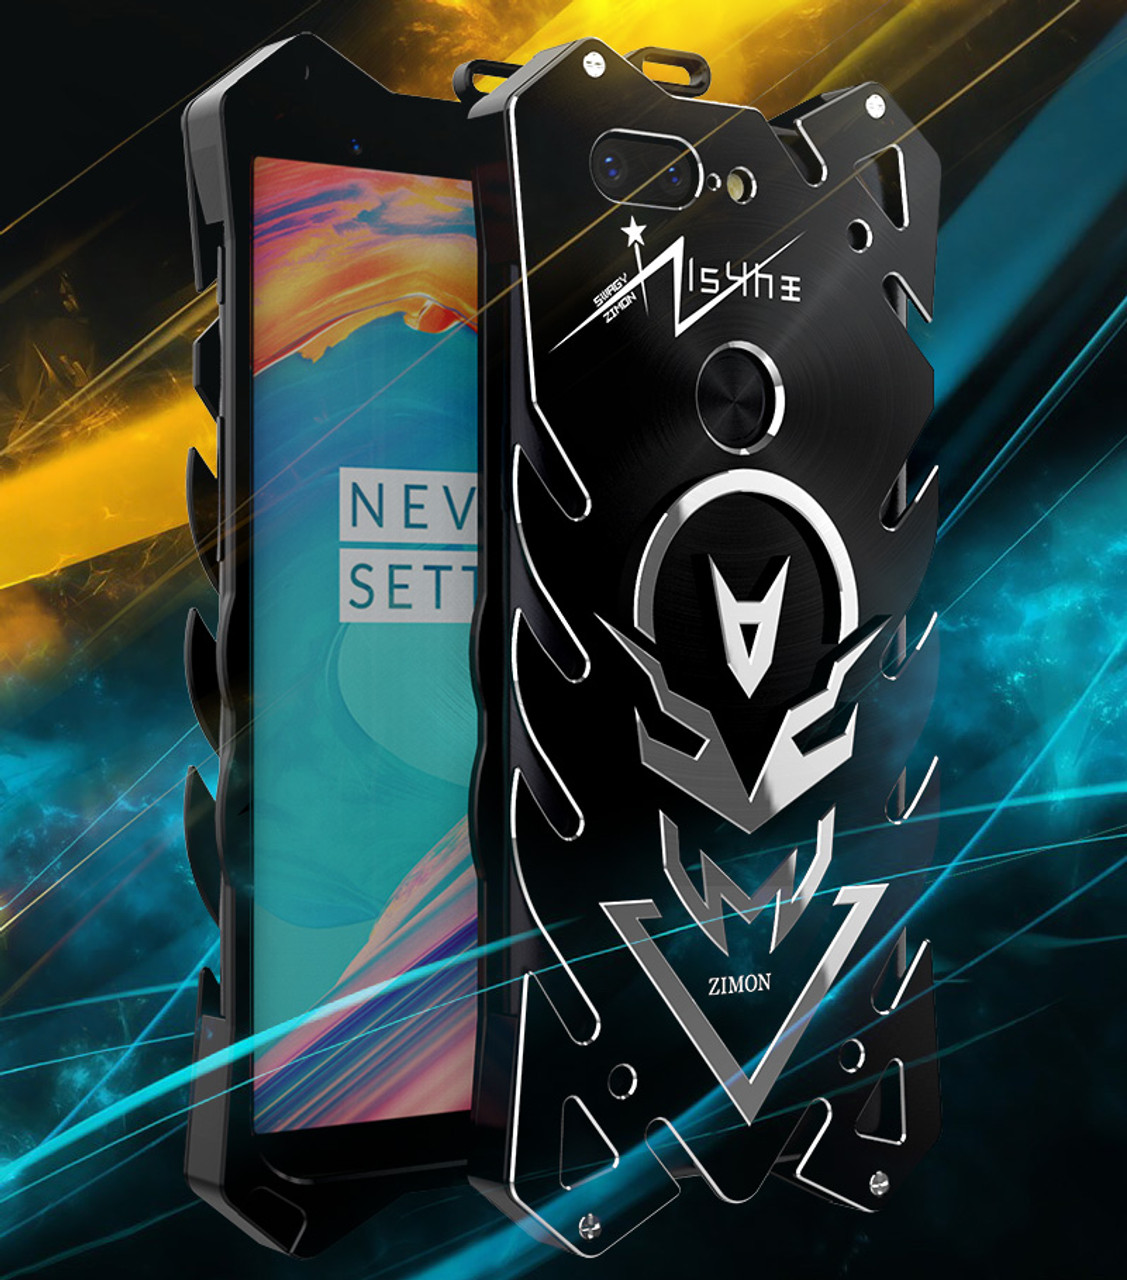 online retailer 5d0f1 1047a Original Simon THOR IRONMAN Shockproof Outdoor Metal Cover Aluminium  Anti-knock Case For Oneplus 5T Three/One Plus 5T A5010